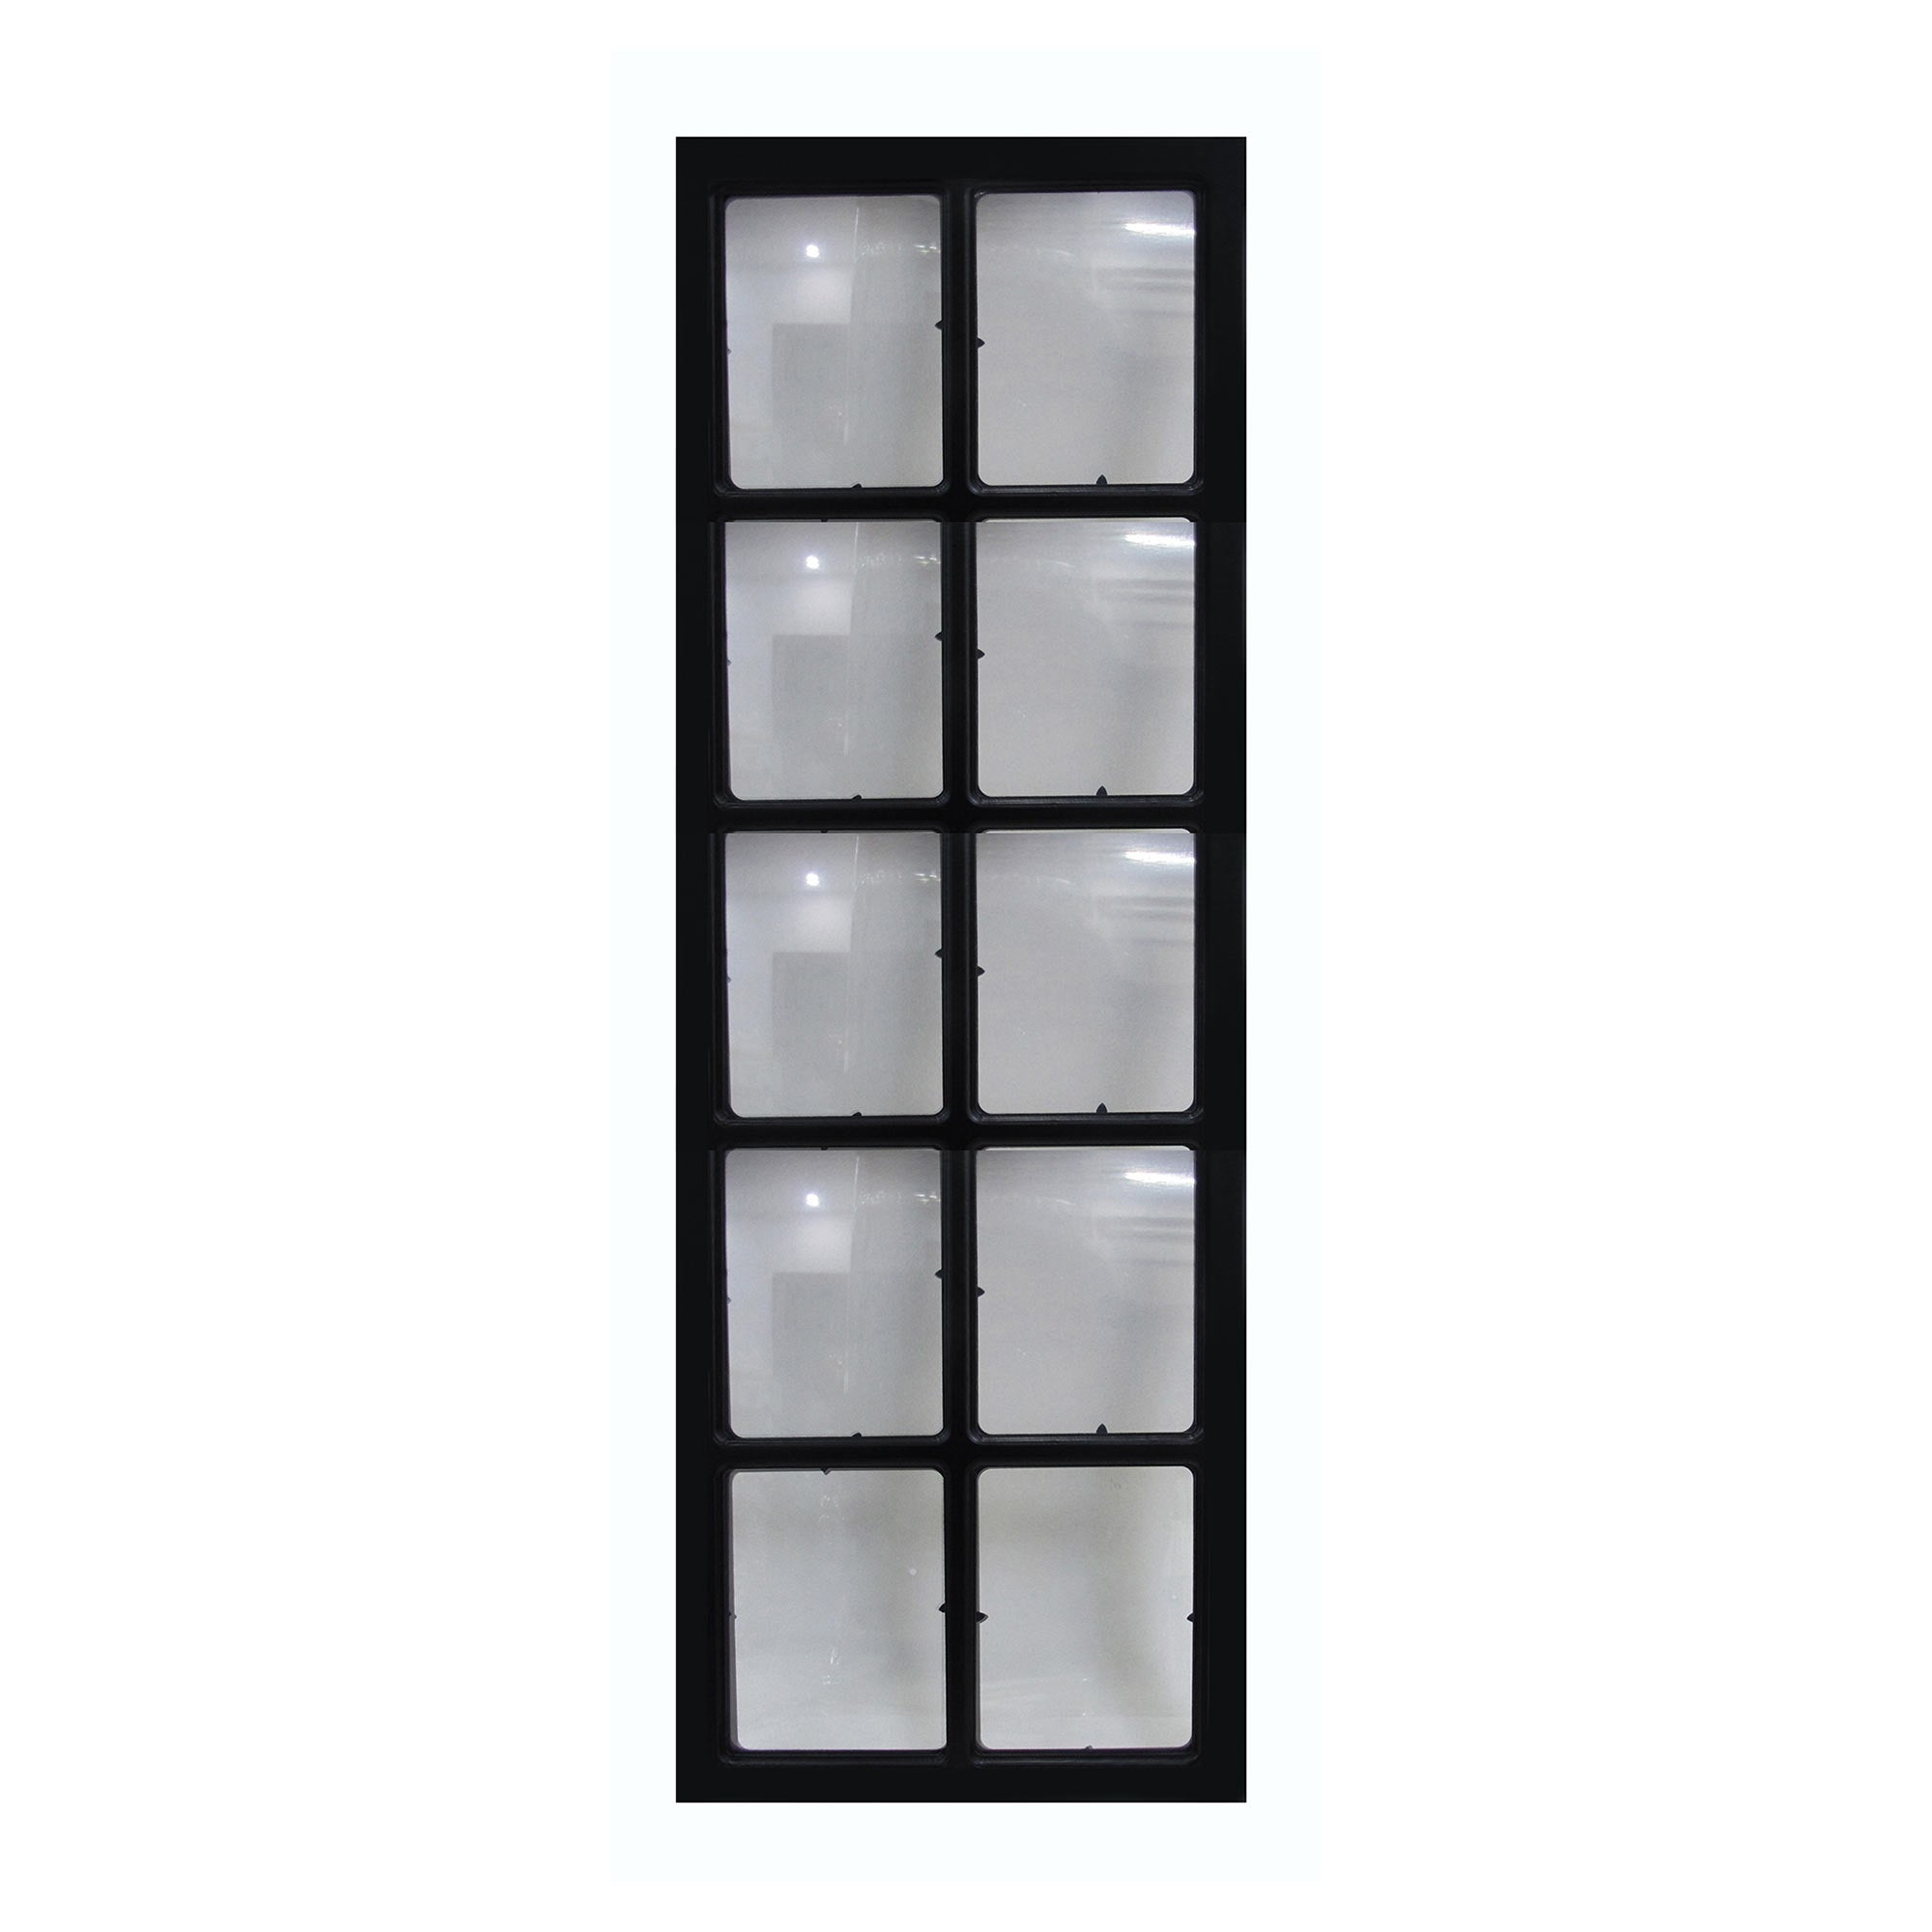 Image of 10 Aperture Window Pane Photo Frame Black